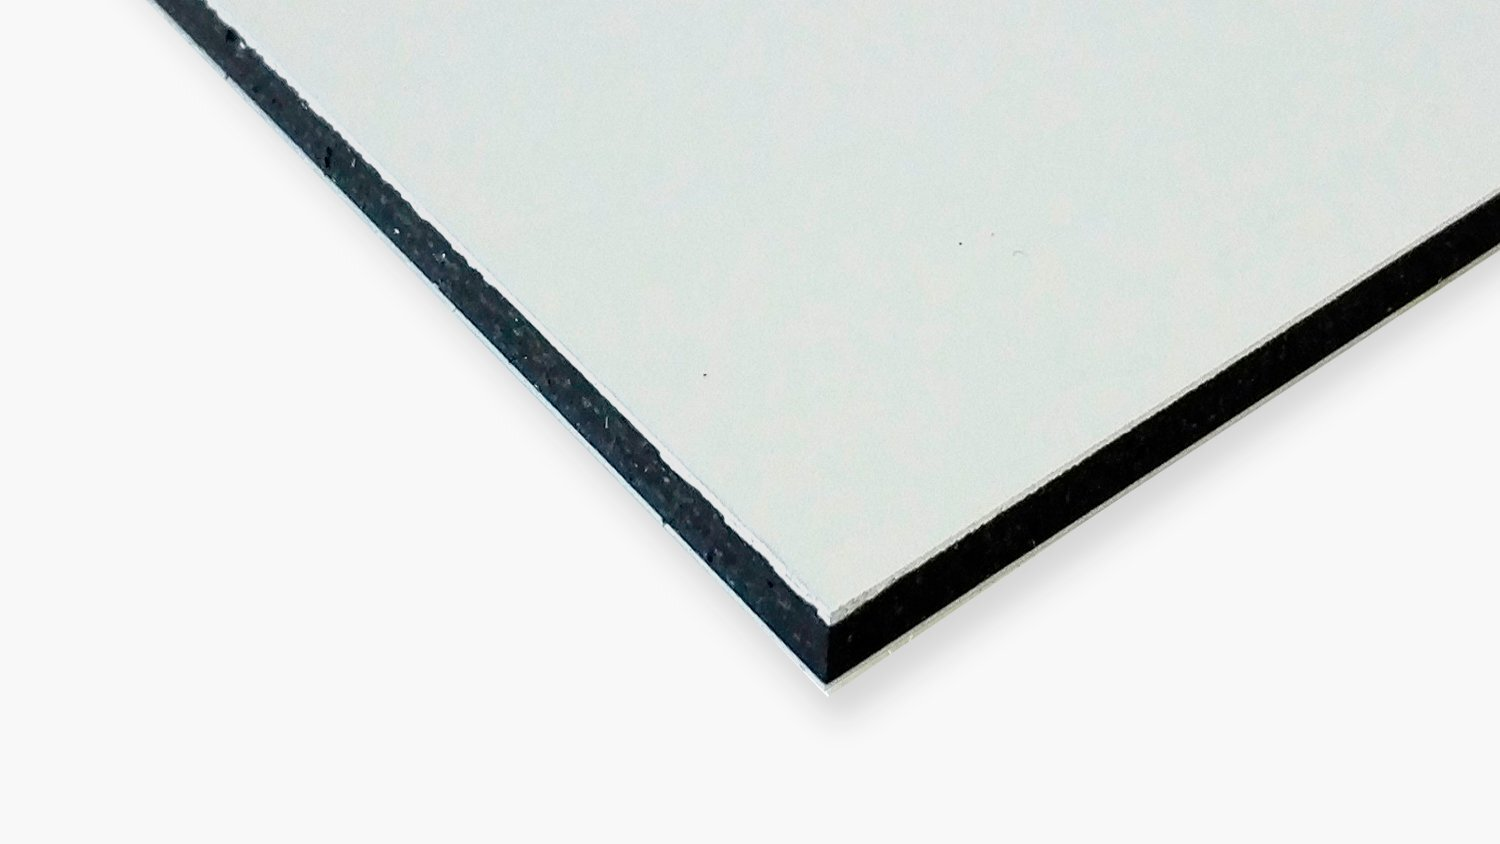 Dbond 3 mm satinato